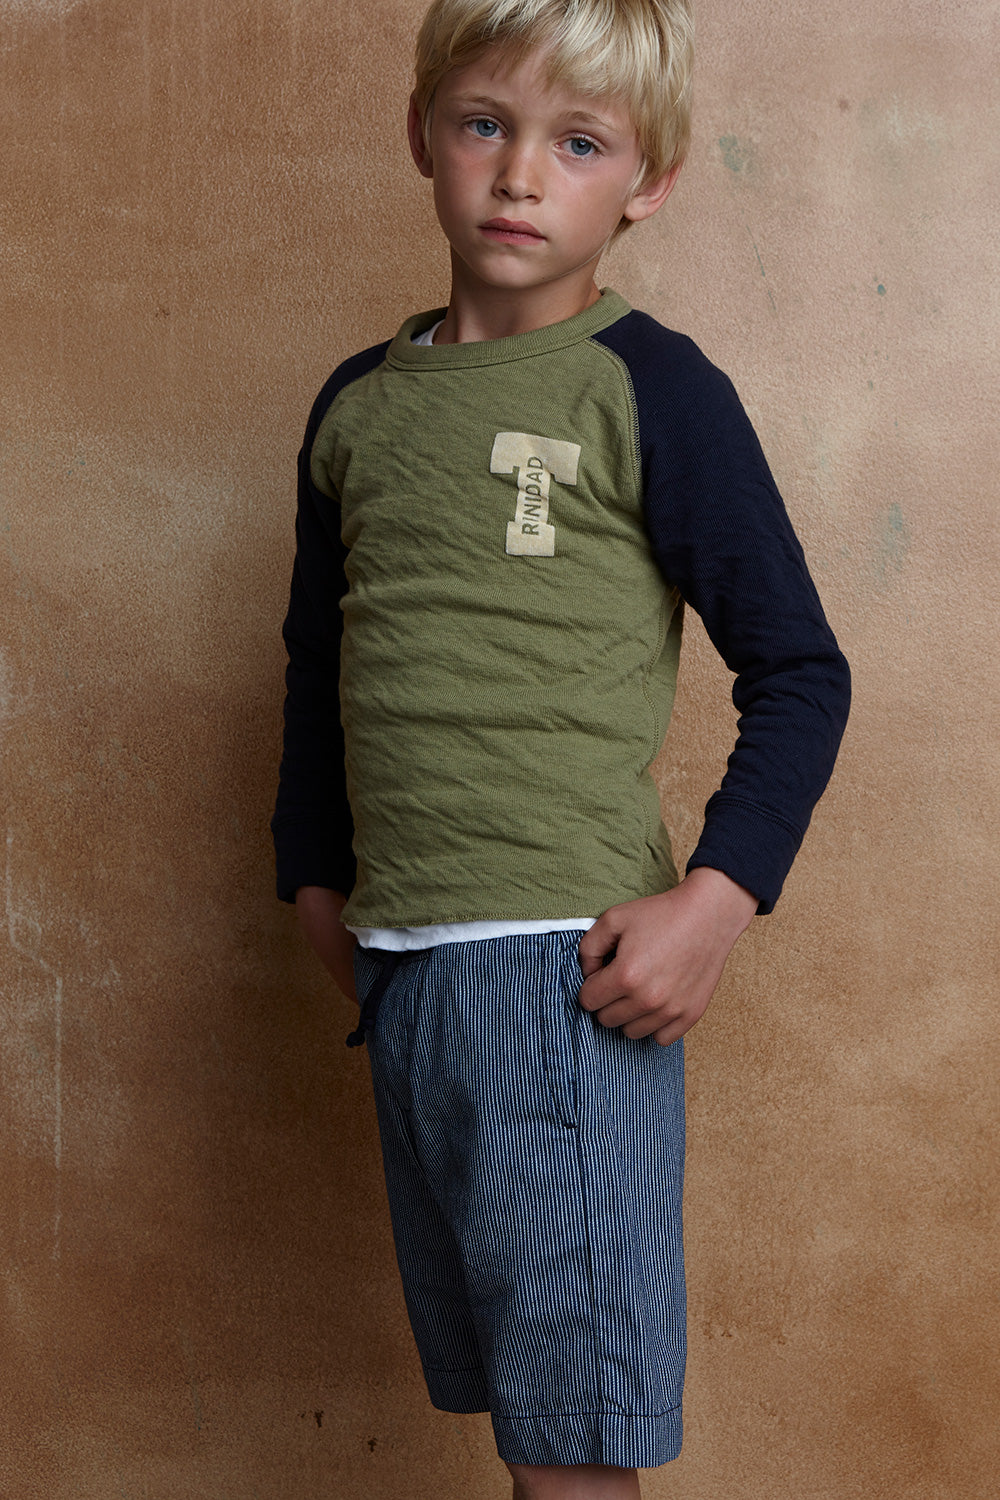 Lookbook boys 10